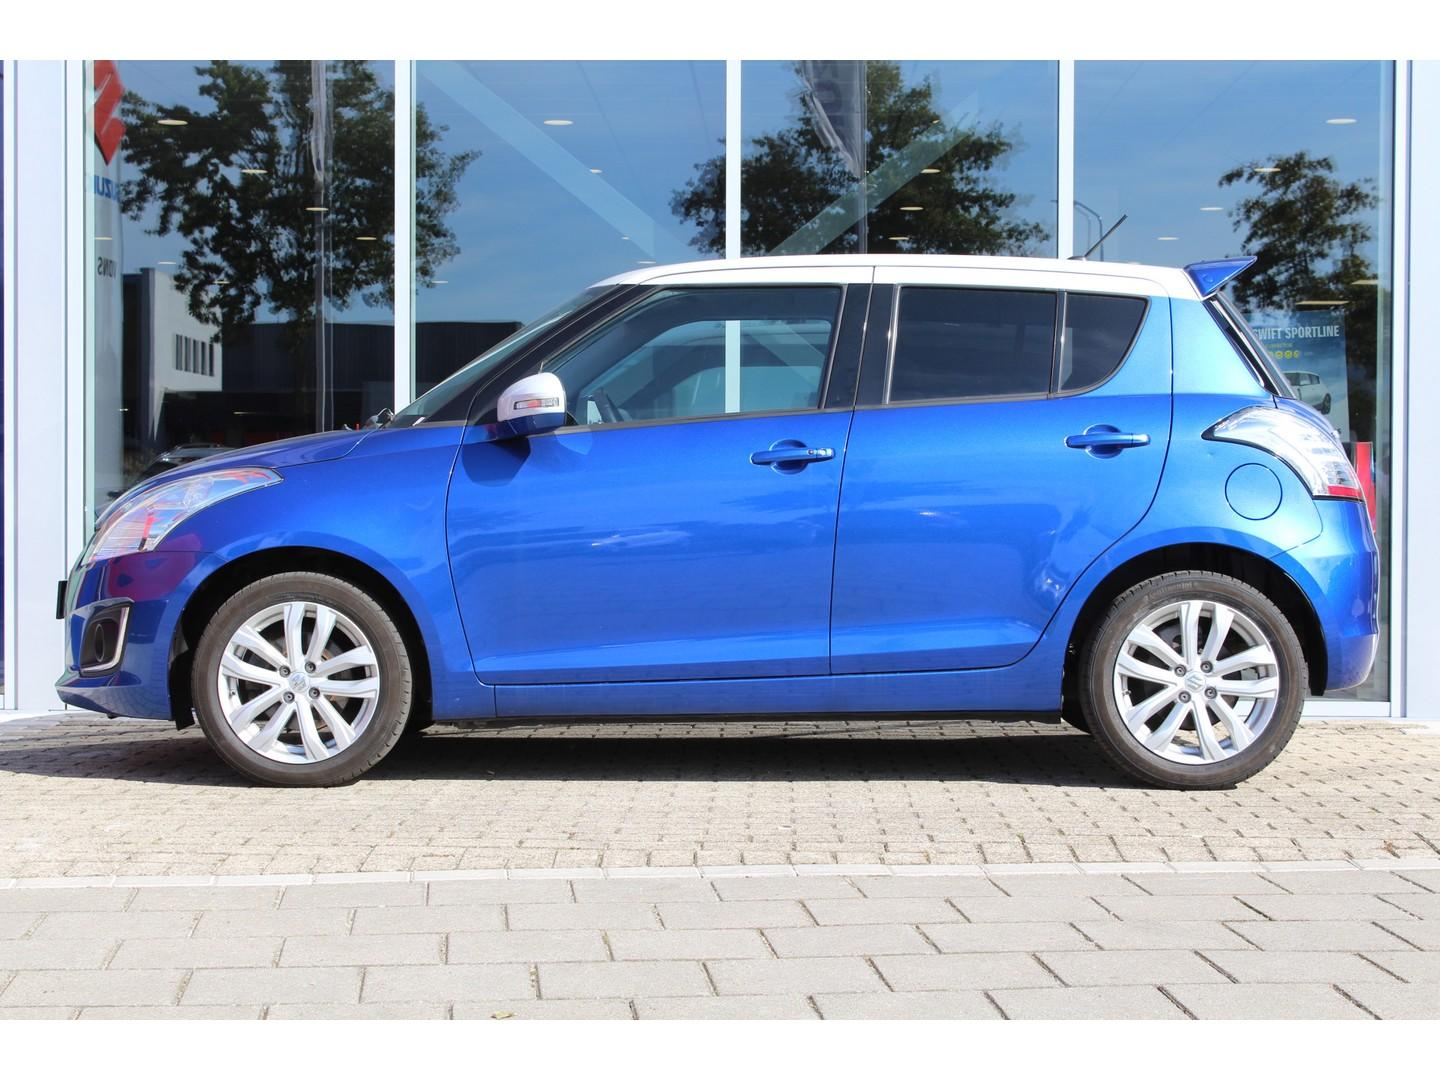 Suzuki Swift 1.2 exclusive easss clima / cruise / privacy-glass / two-tone vanaf € 159,- p.mnd